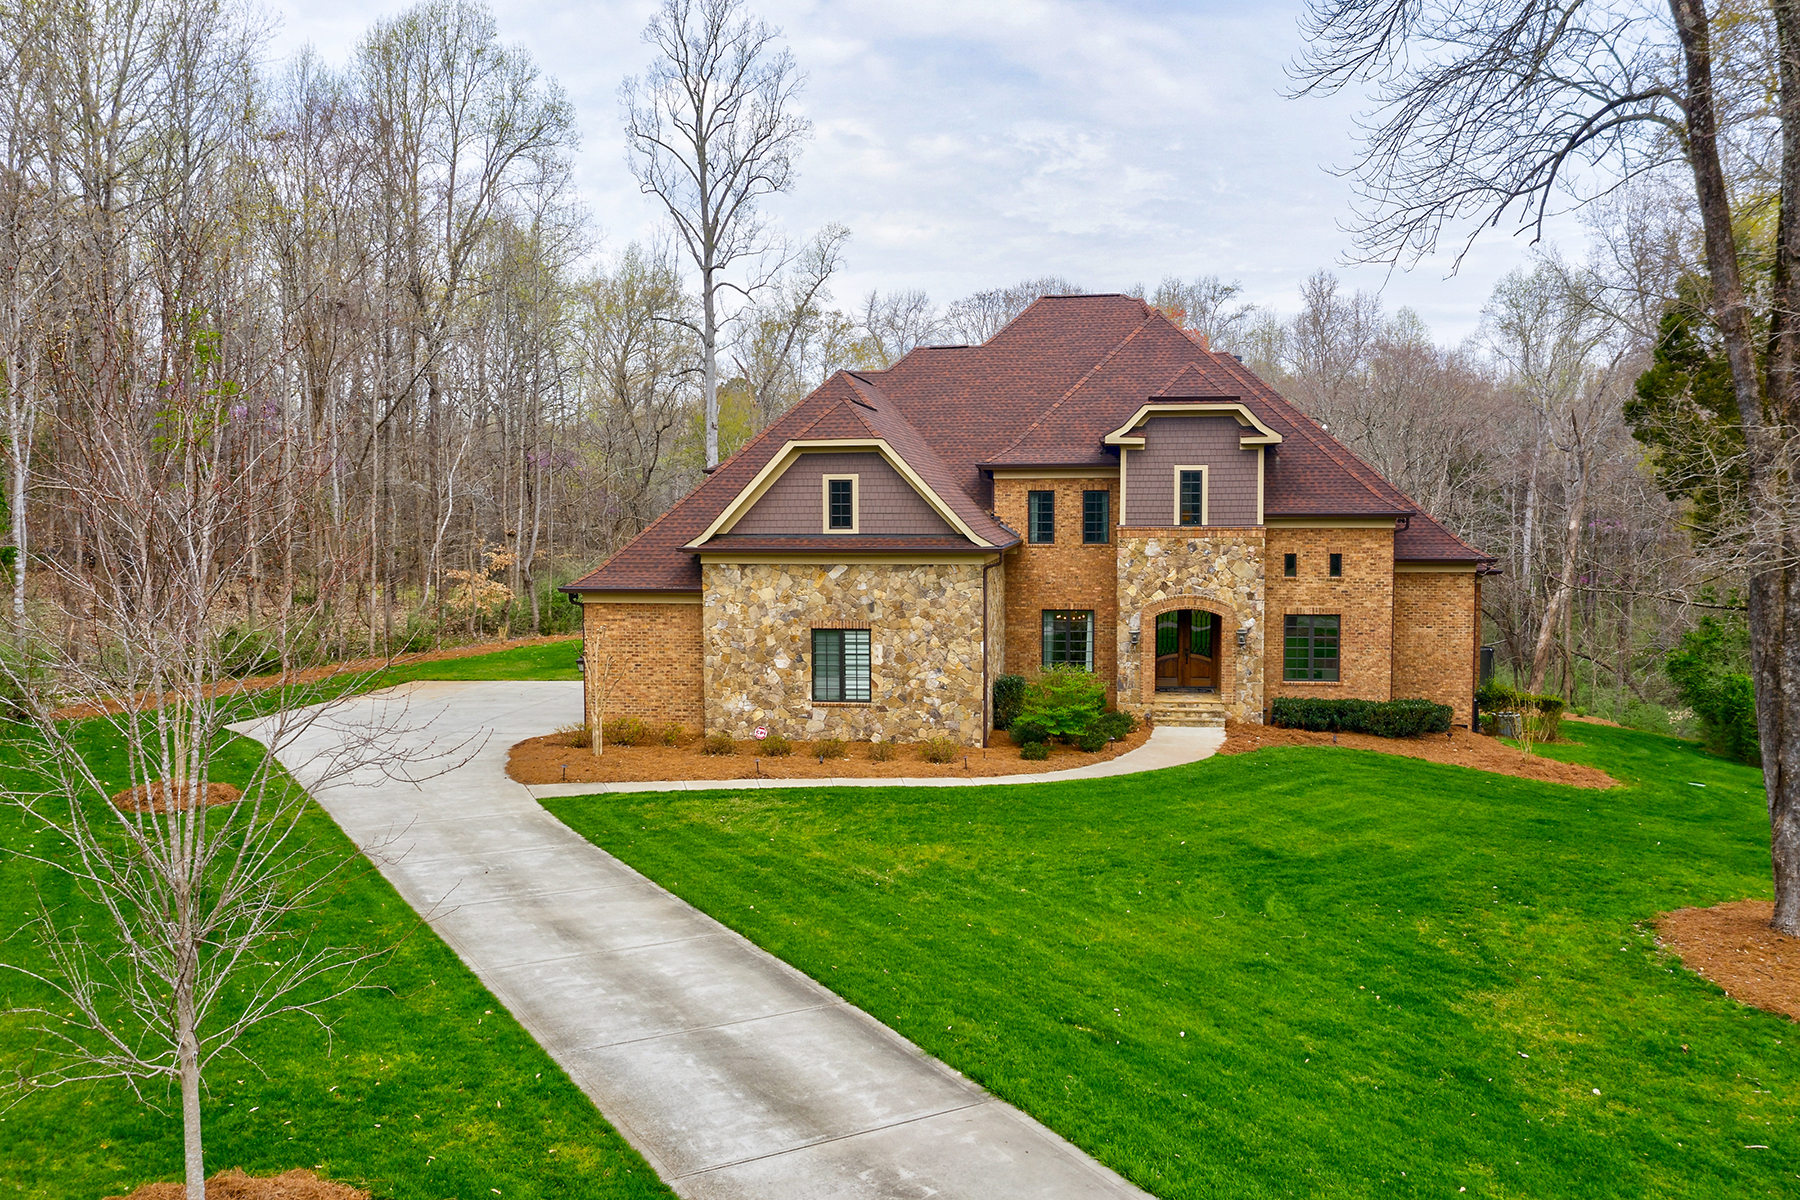 Single Family Home for Active at THE SANCTUARY 11107 Green Heron Ct Charlotte, North Carolina 28278 United States